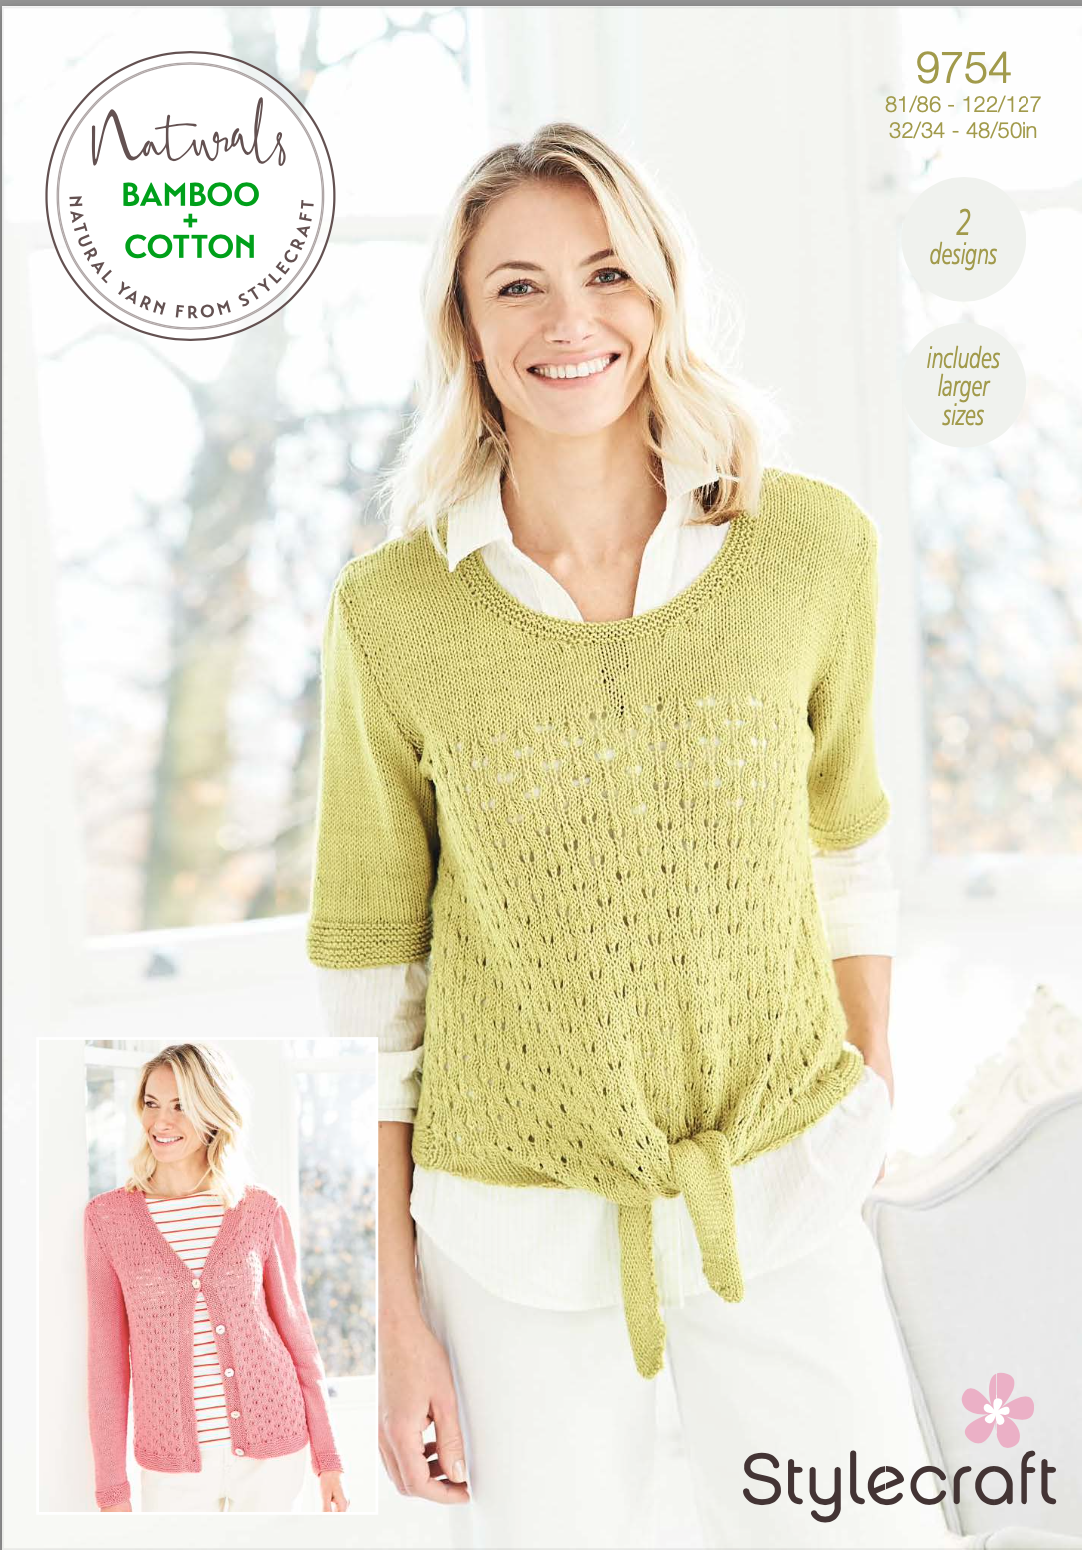 Stylecraft Pattern Naturals Bamboo+Cotton 9754 (download) product image